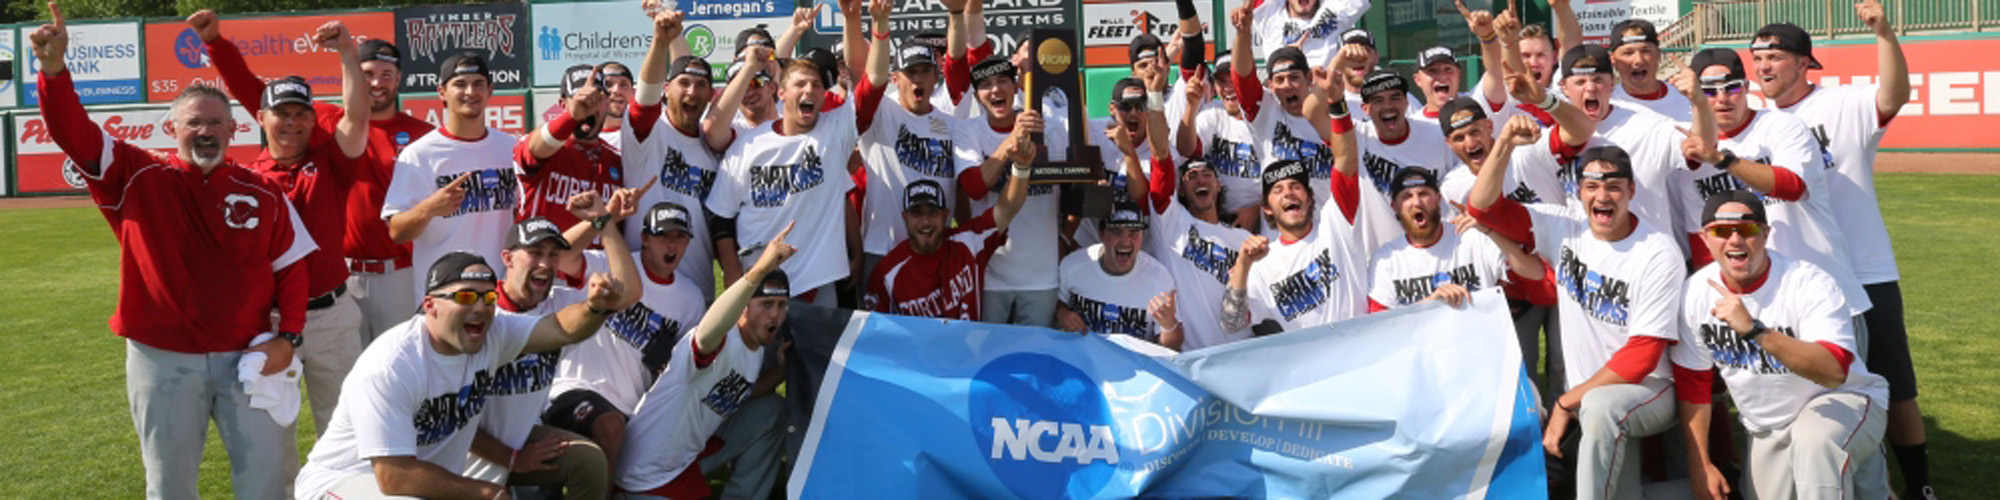 Baseball team holding up their NCAA trophy